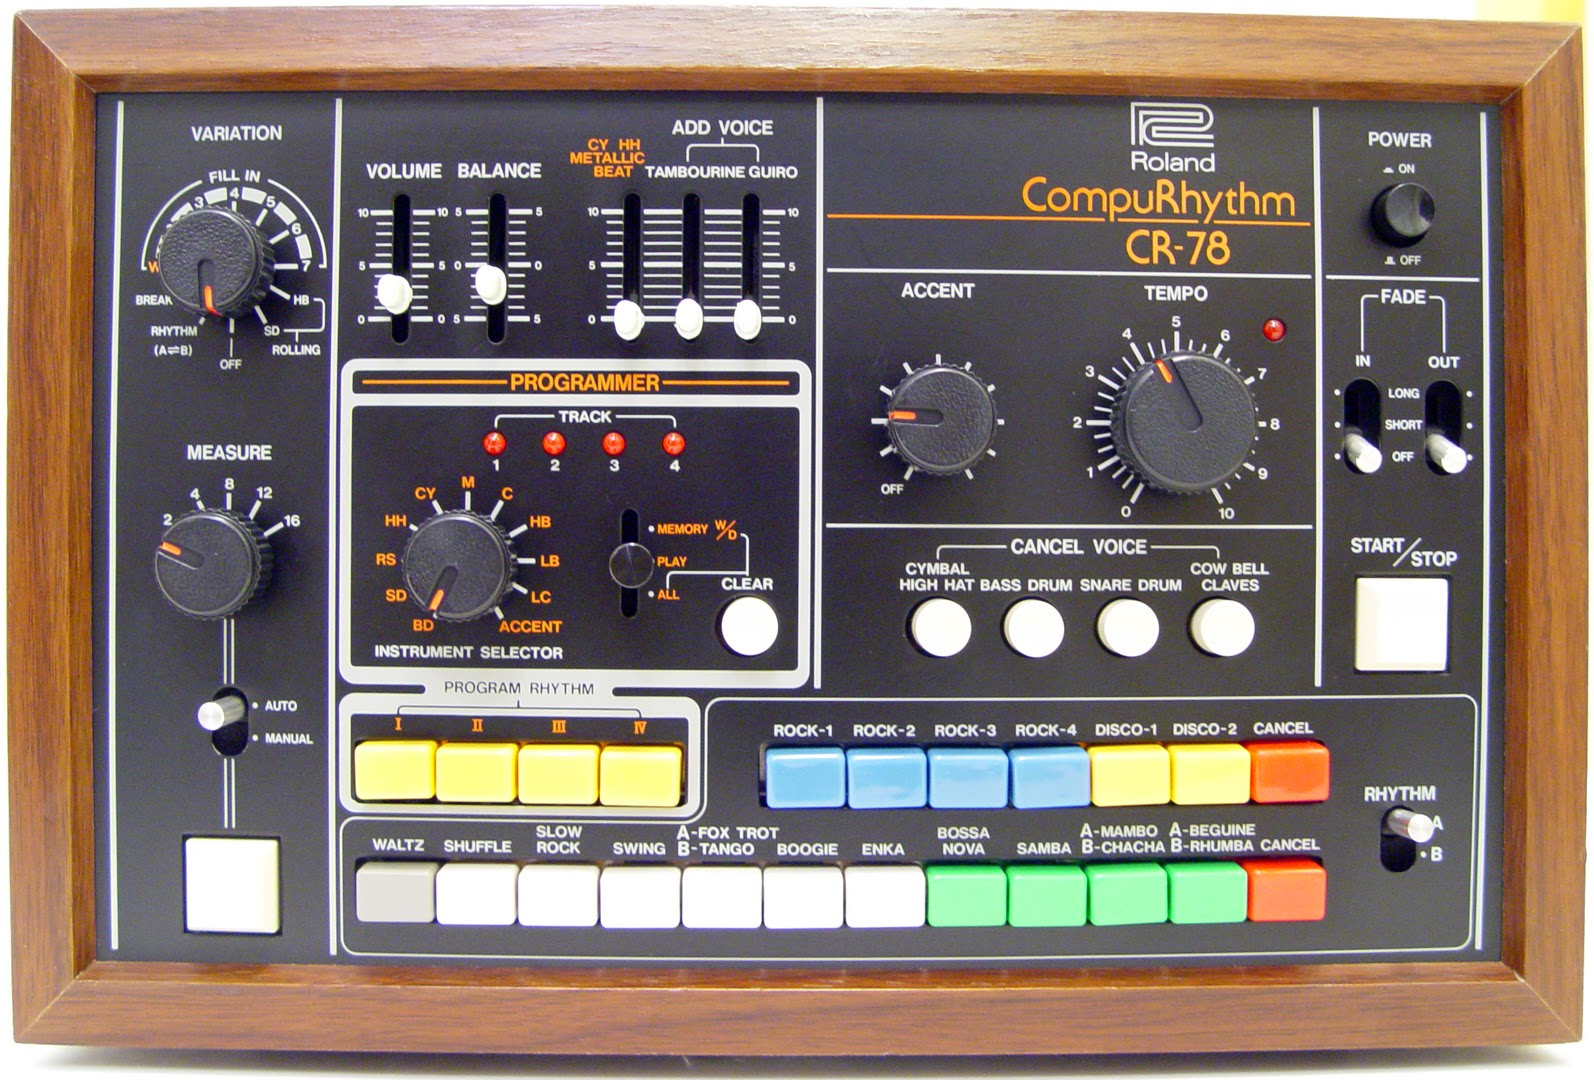 jondent exploring electronic music roland compurhythm cr 800 drum machine. Black Bedroom Furniture Sets. Home Design Ideas